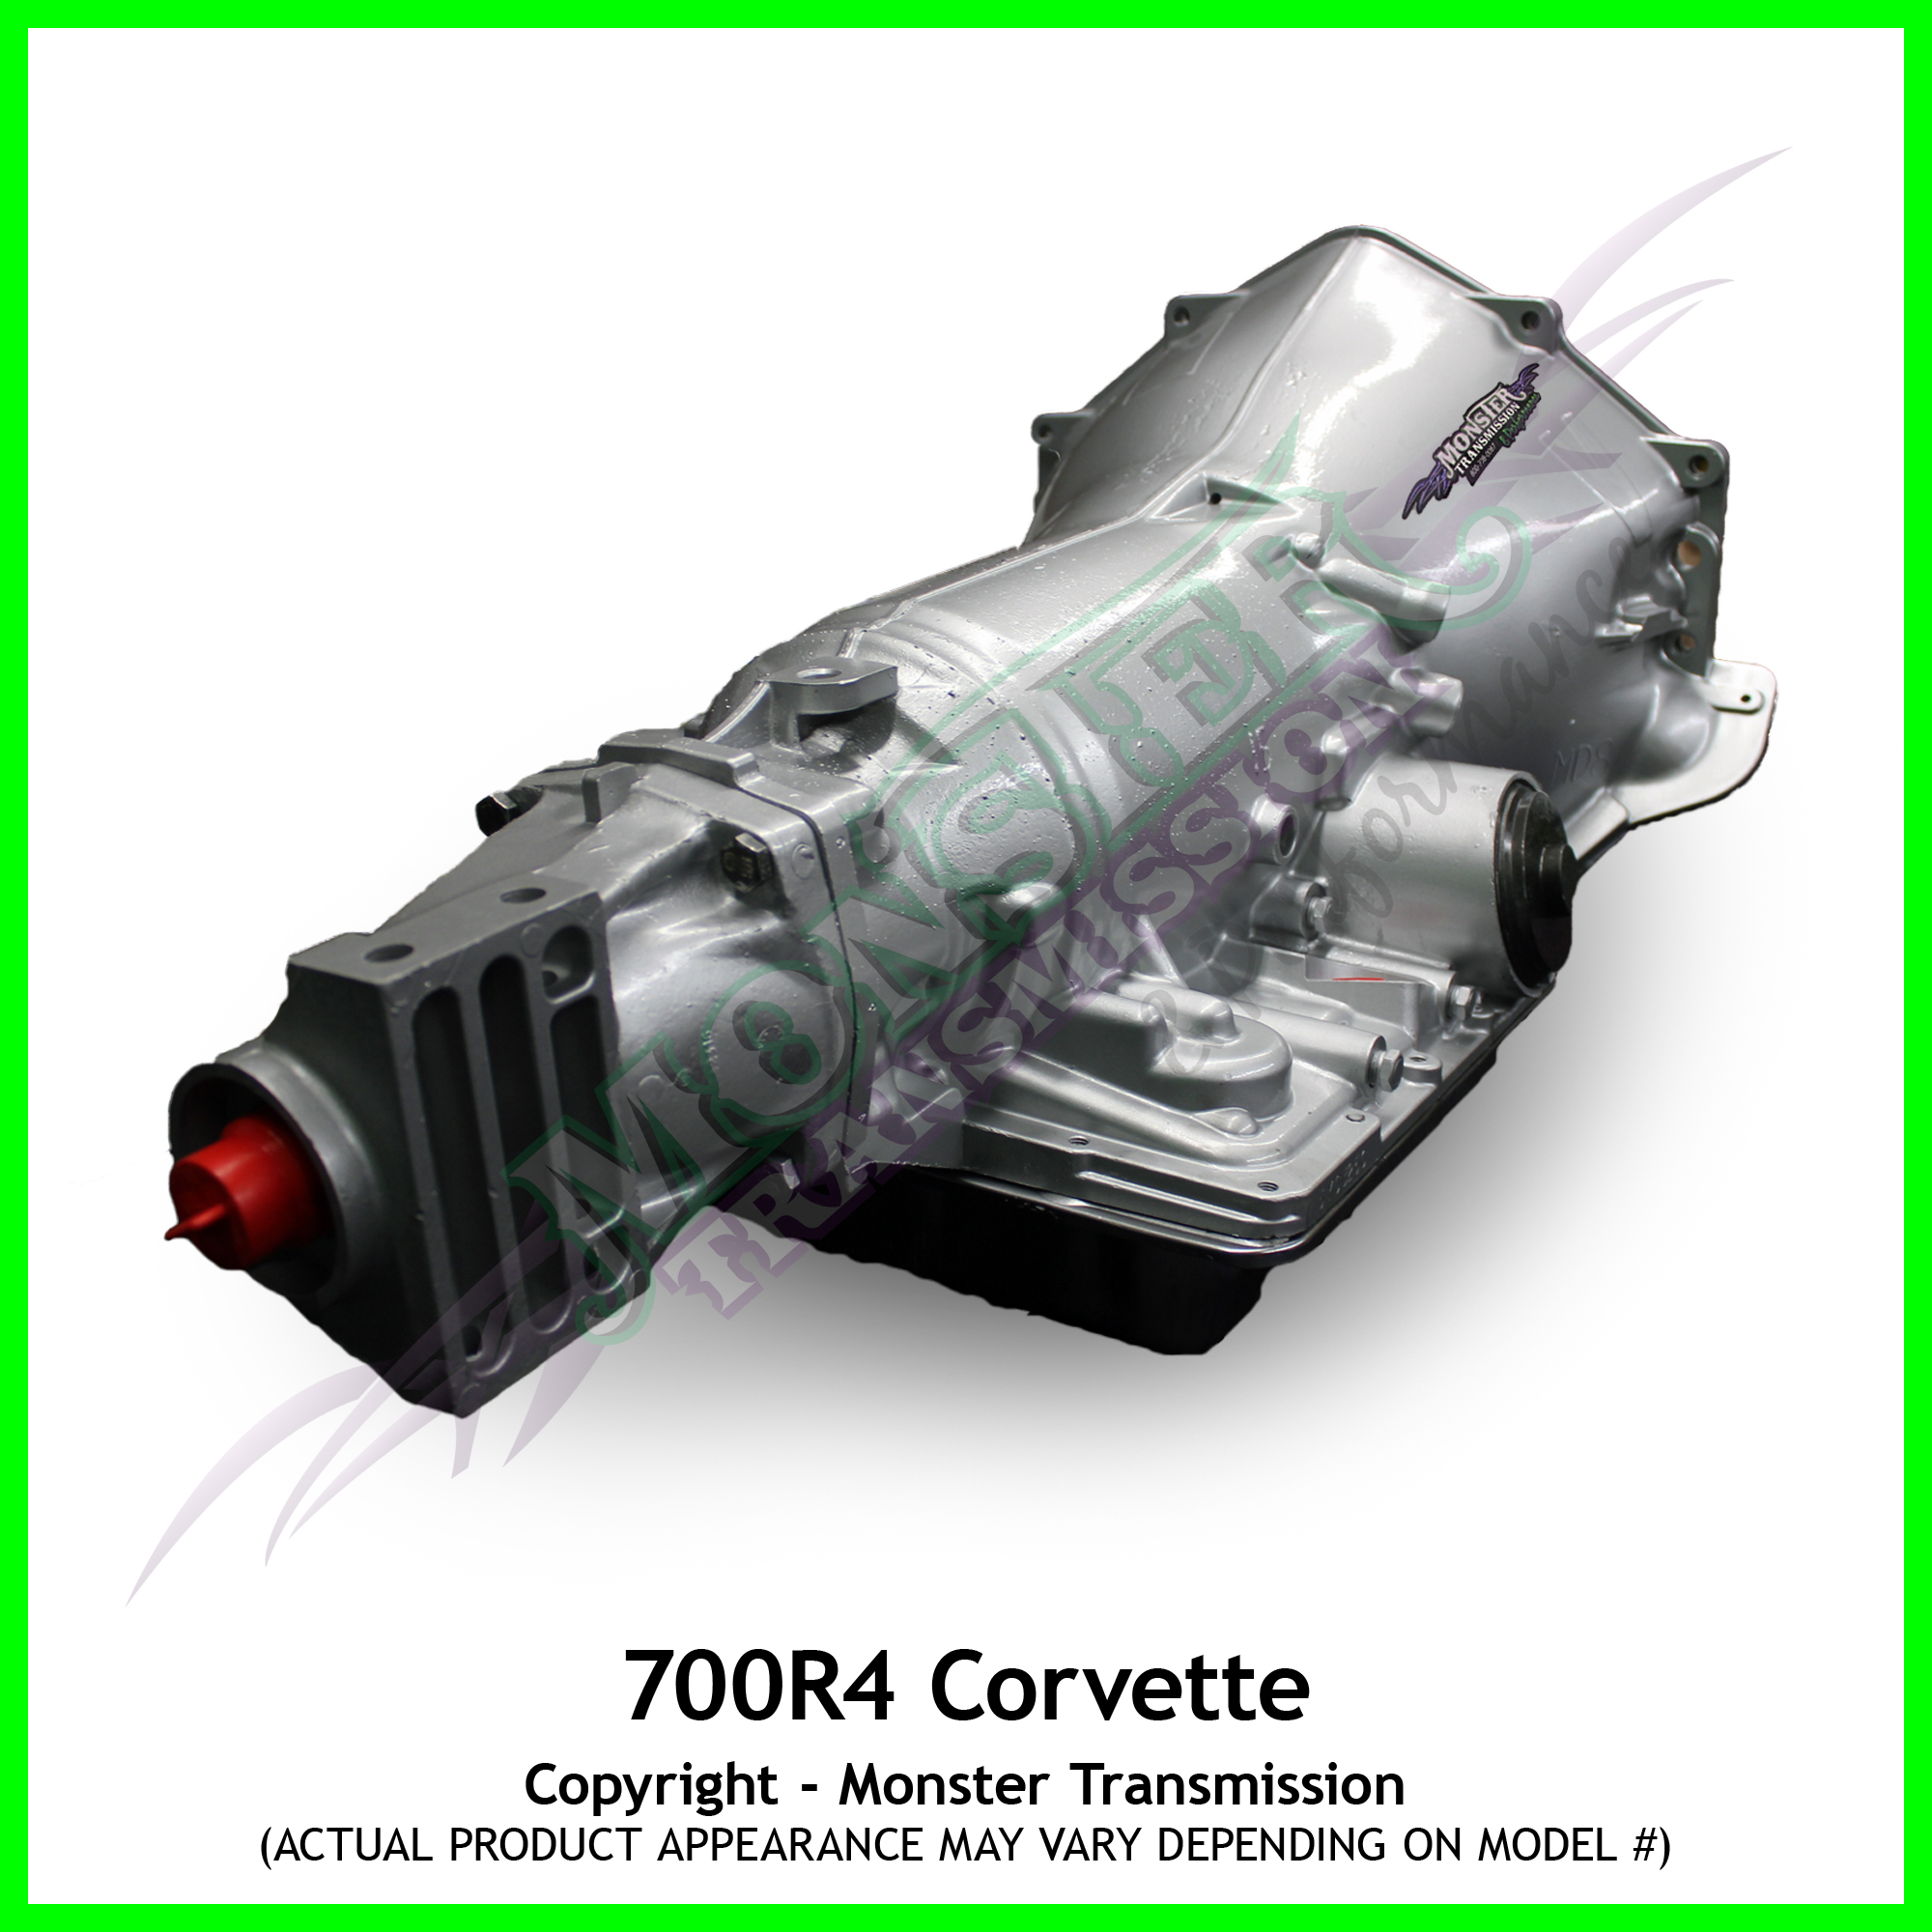 Corvette 700r4 Transmission Heavy Duty 2WD, 700r4 transmission ...